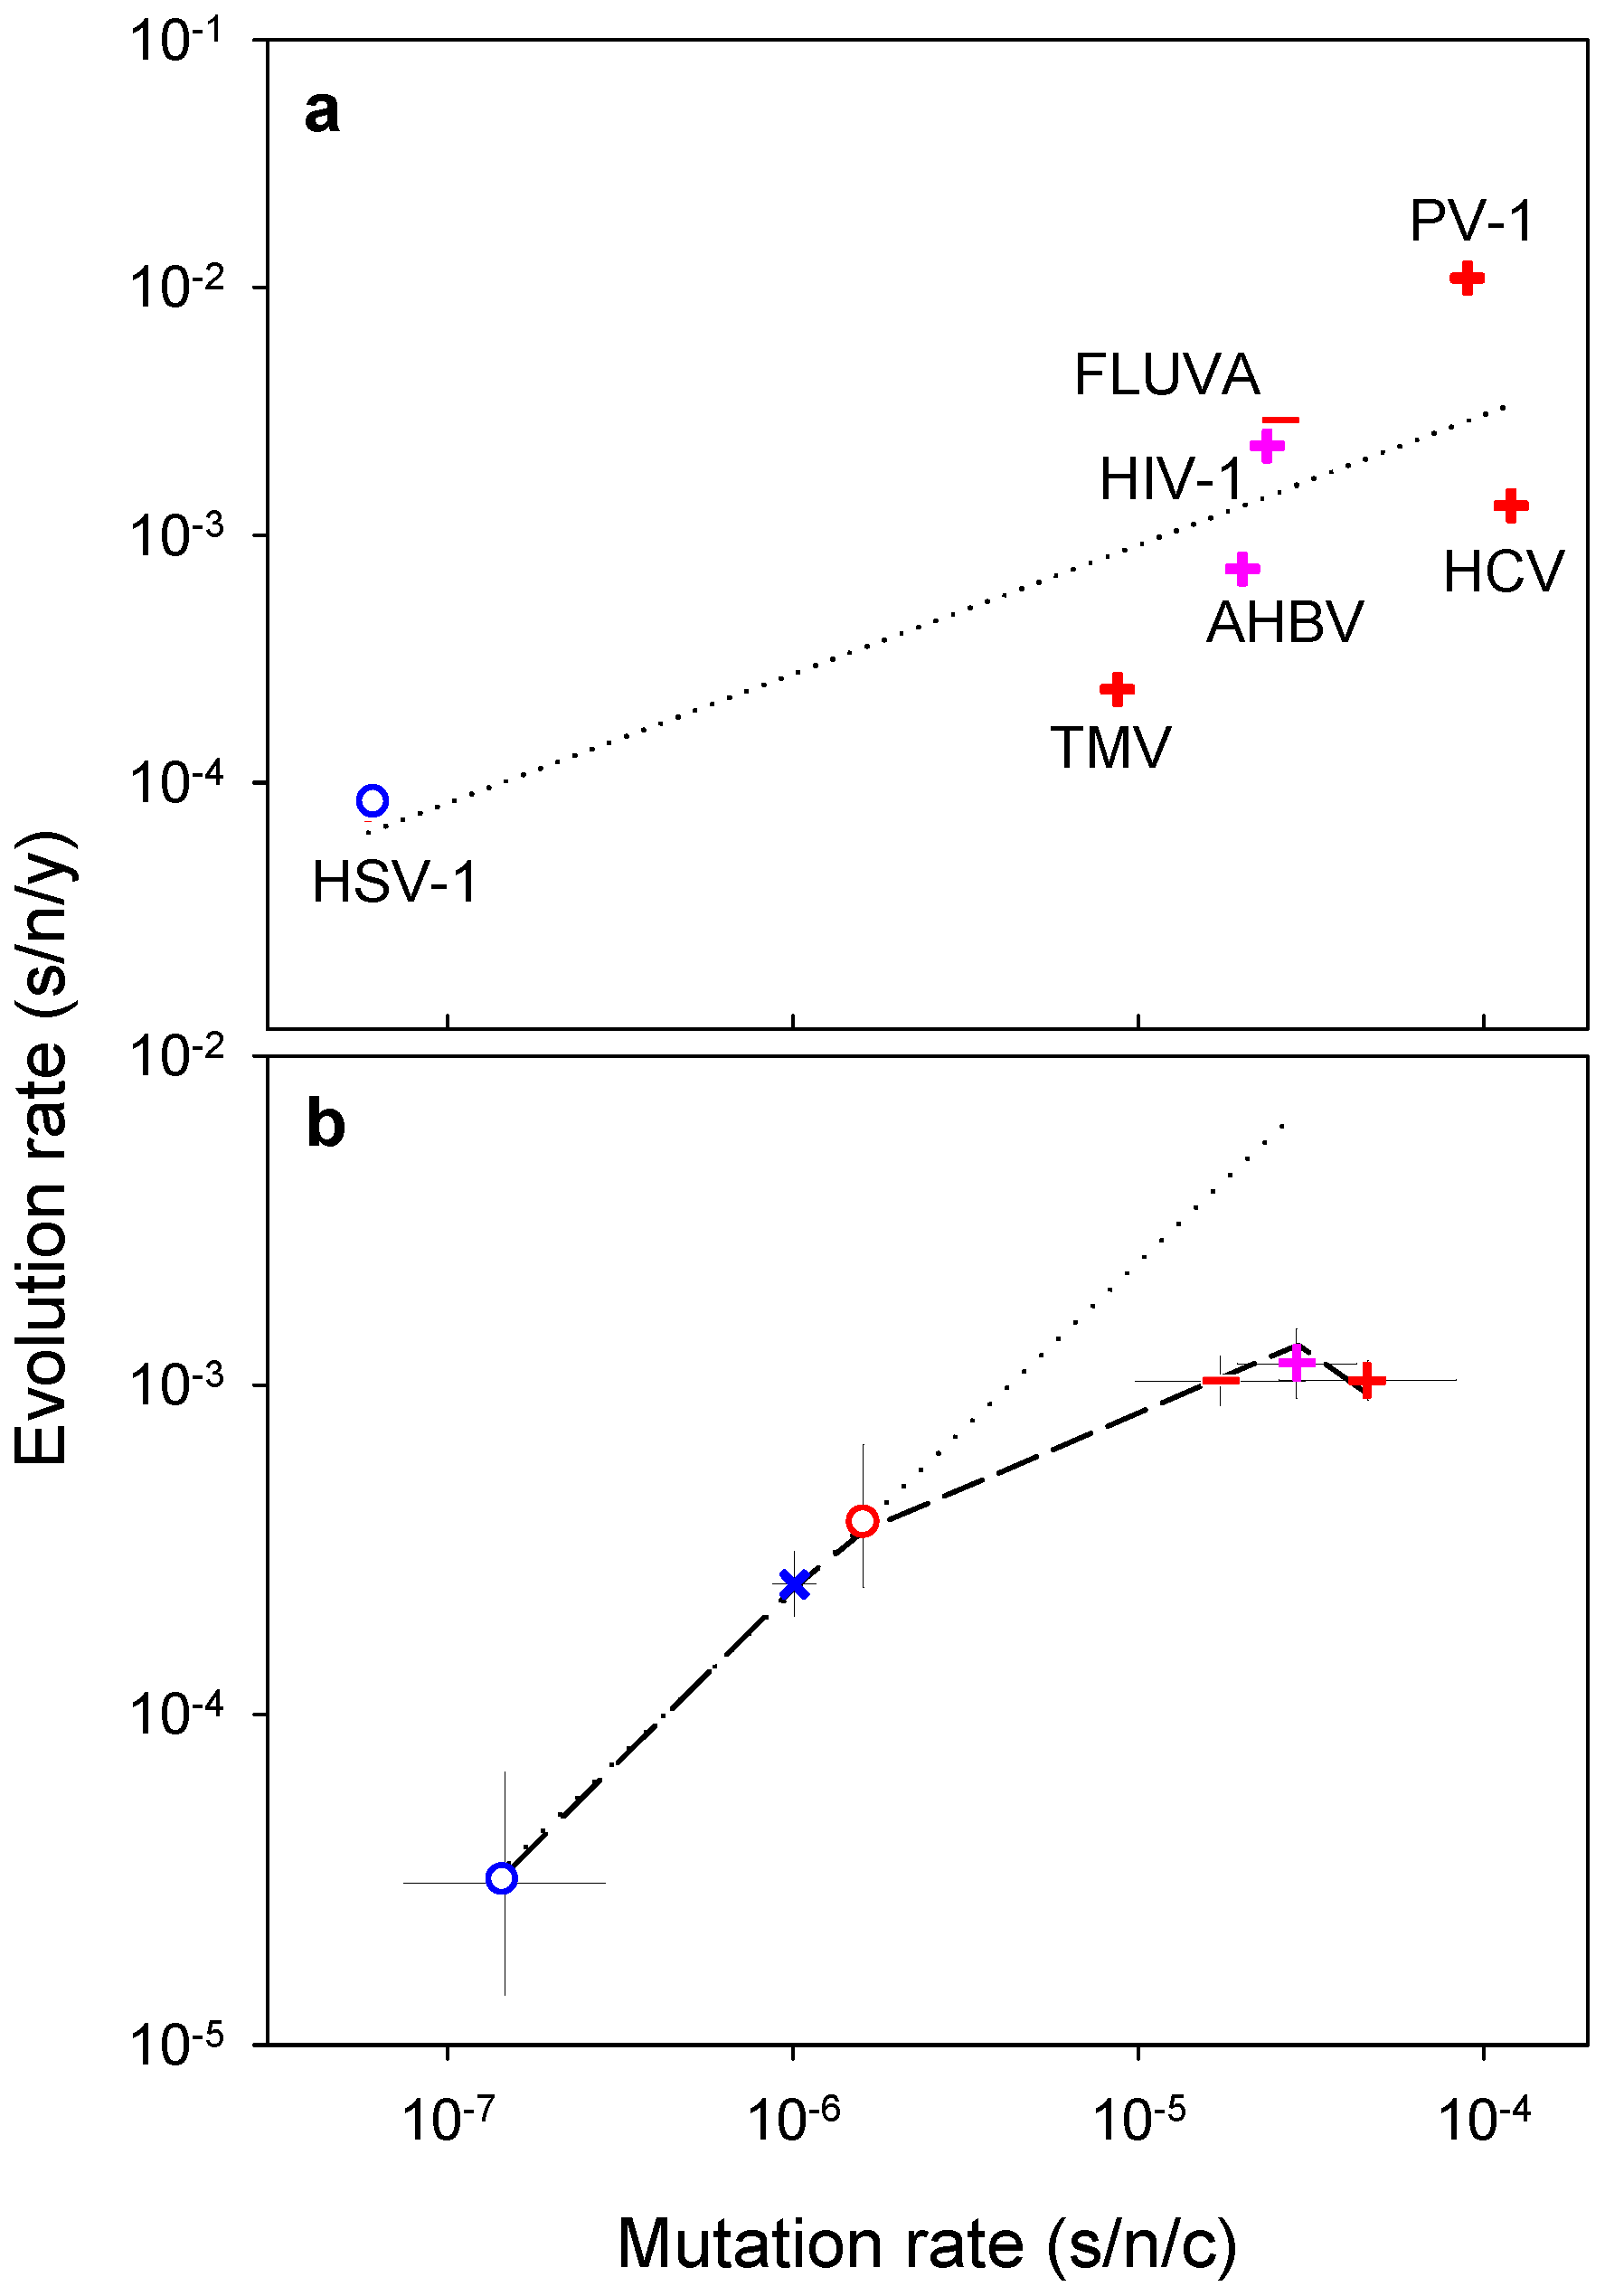 Relationship between mutation and evolution rates across viruses.